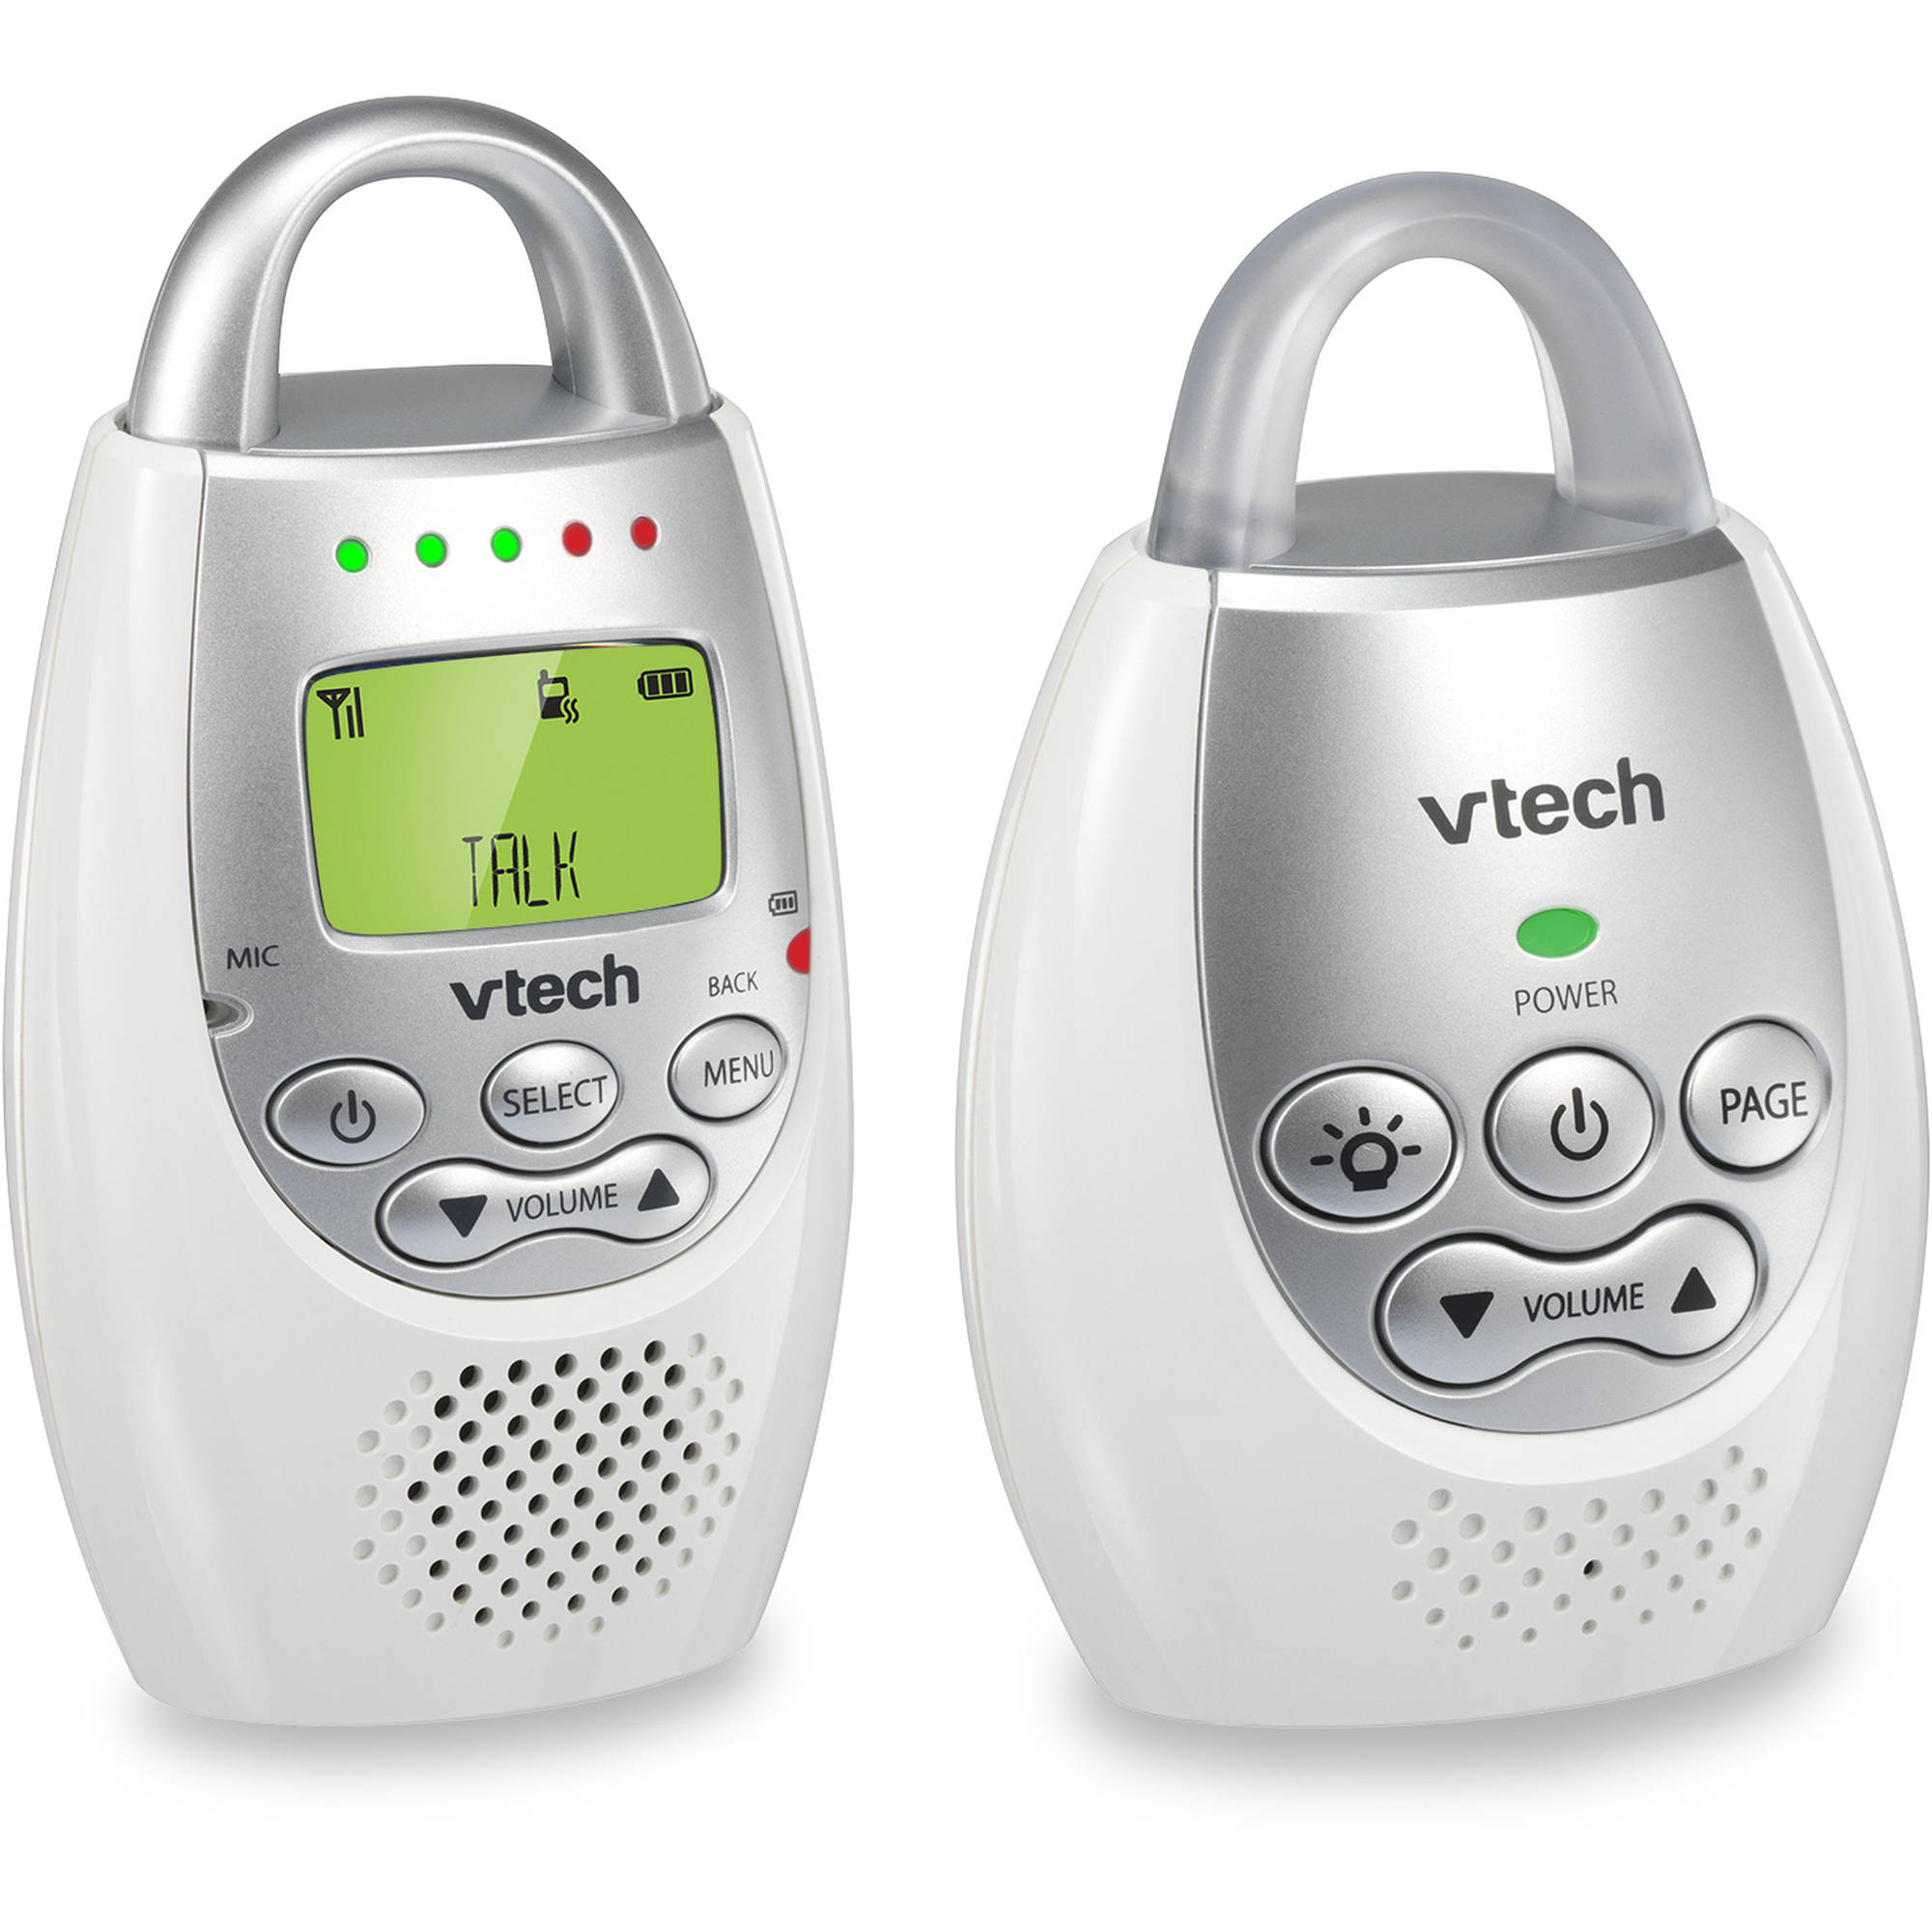 VTech DM221 Safe & Sound DECT 6.0 Digital Audio Baby Monitor with Vibrating Sound Alert, 1 Parent Unit, White/Silver